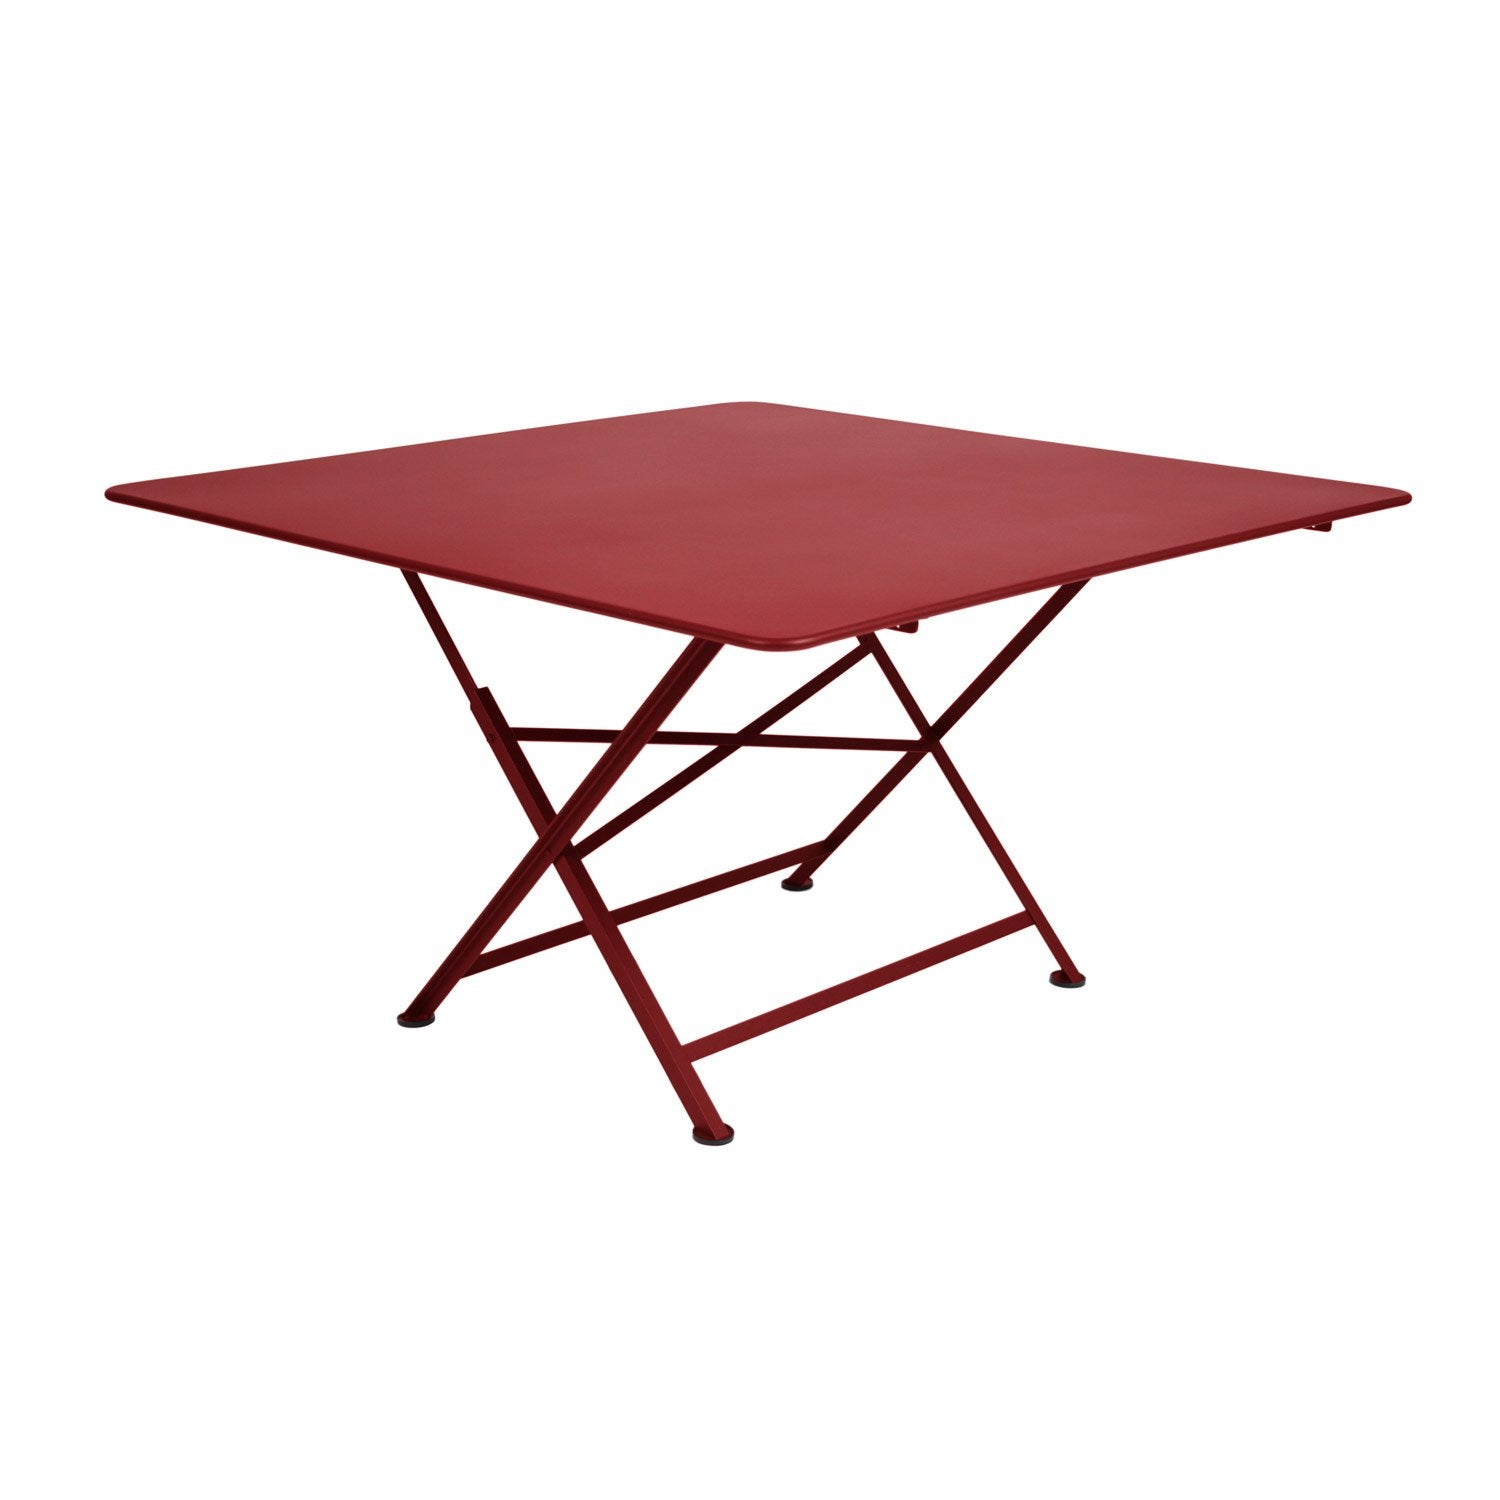 Table de jardin fermob cargo carr e piment 8 personnes for Table salon de jardin pliante